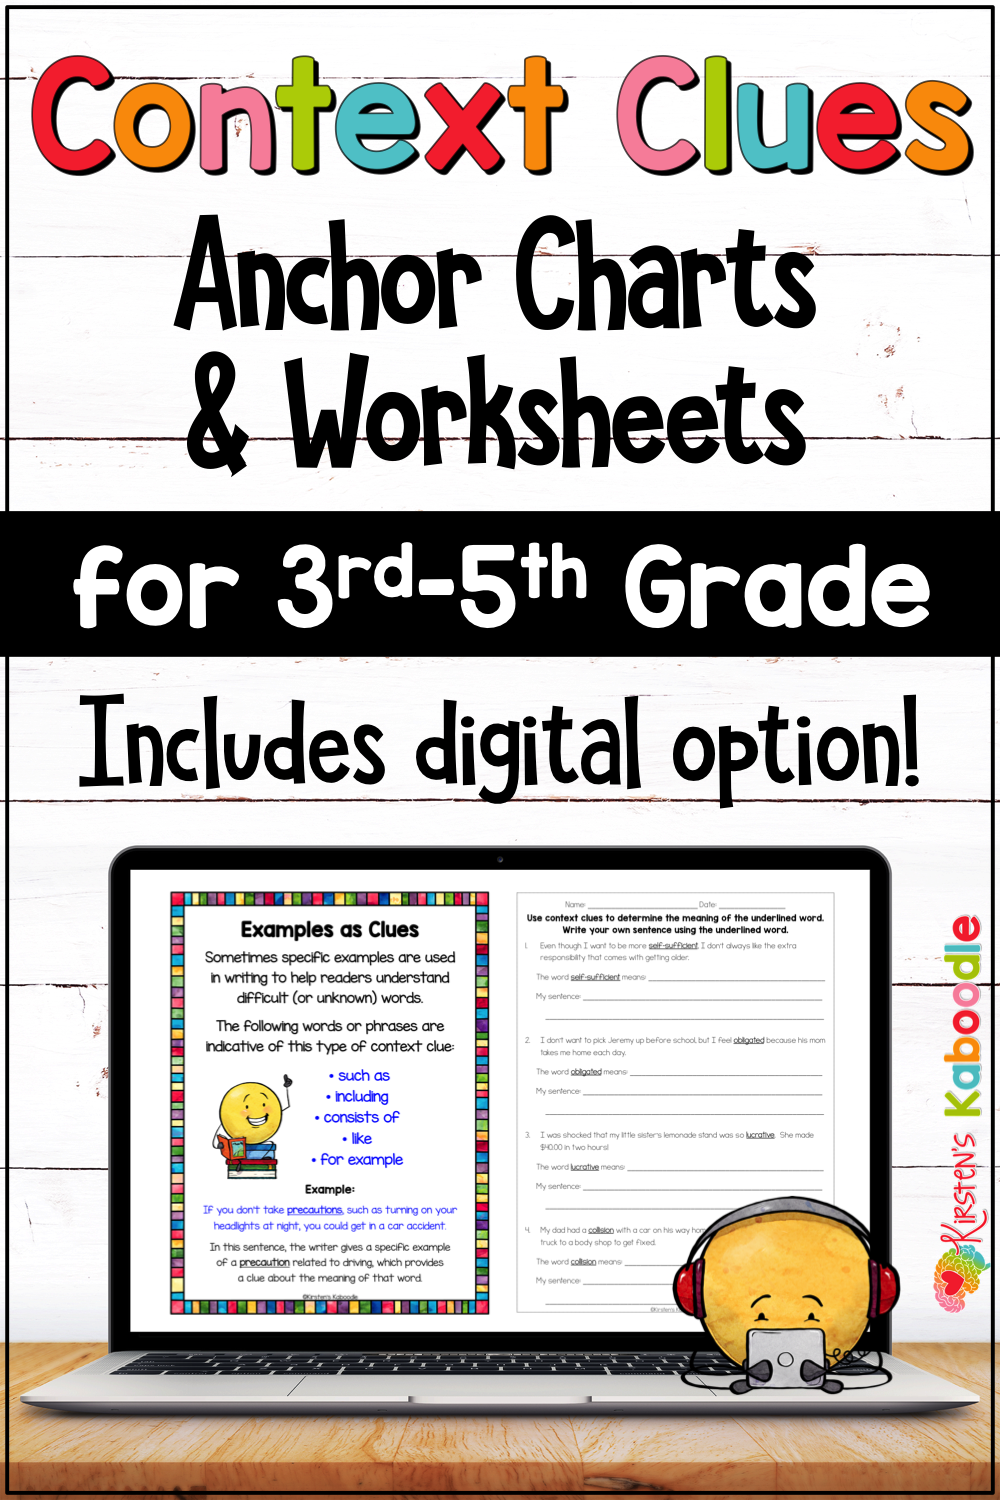 Context Clues Activities Worksheets And Anchor Charts For 3rd 4th 5th Grade Digital Option Context Clues Worksheets Context Clues Context Clues Activities [ 1500 x 1000 Pixel ]